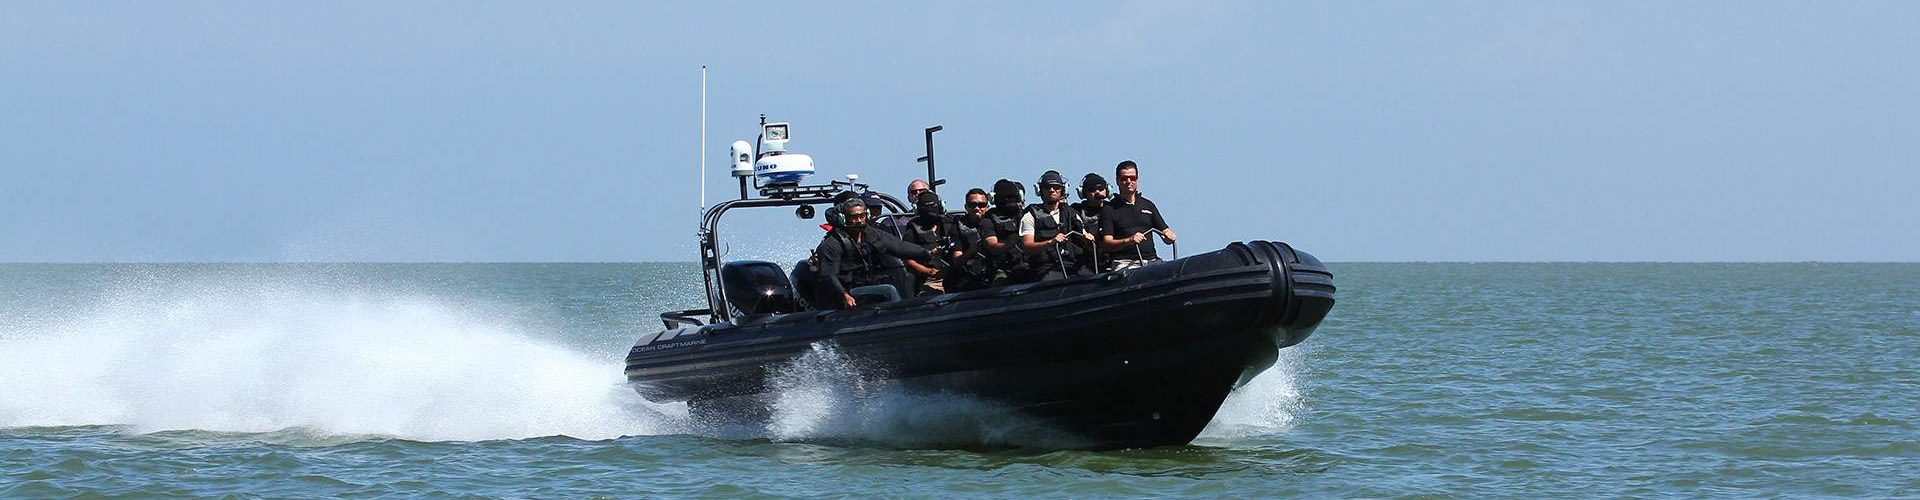 Ocean-Craft-Marine's-Todd-Salus-Delivers-New-Boat-and-Training-to-the-Royal-Brunei-Police